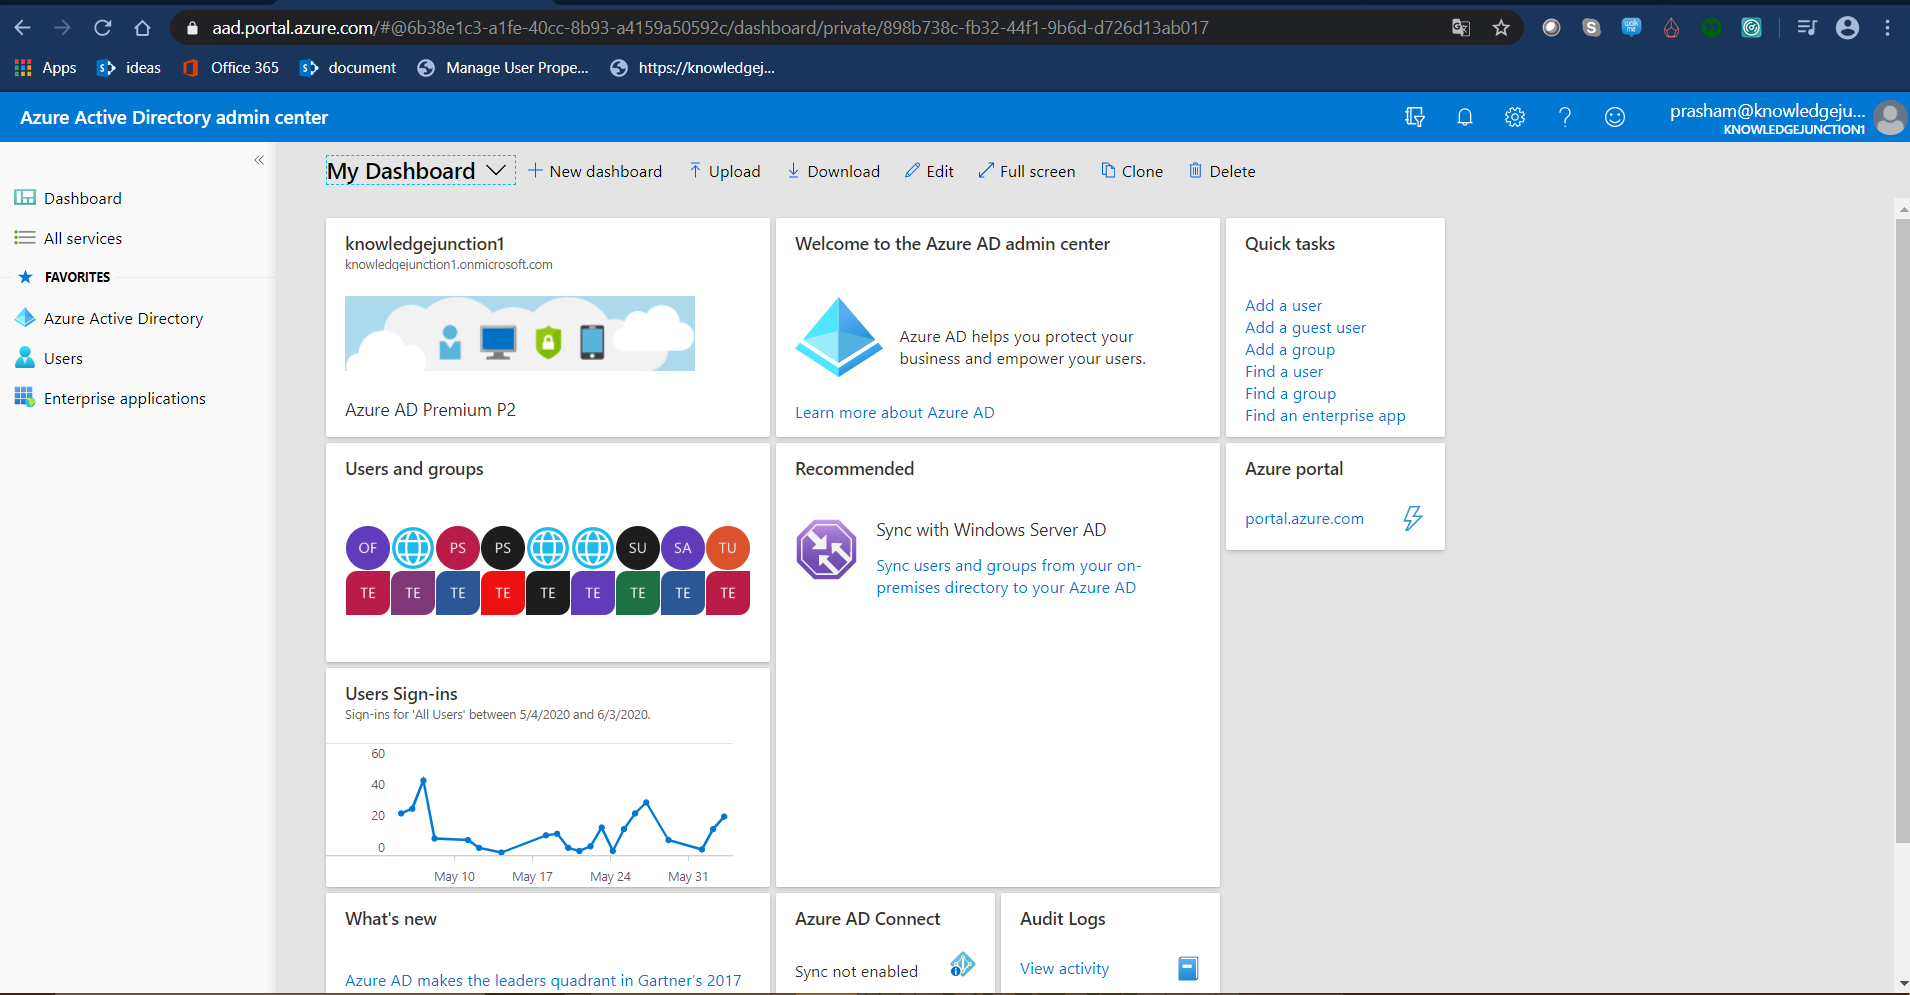 Azure AD Admin Center